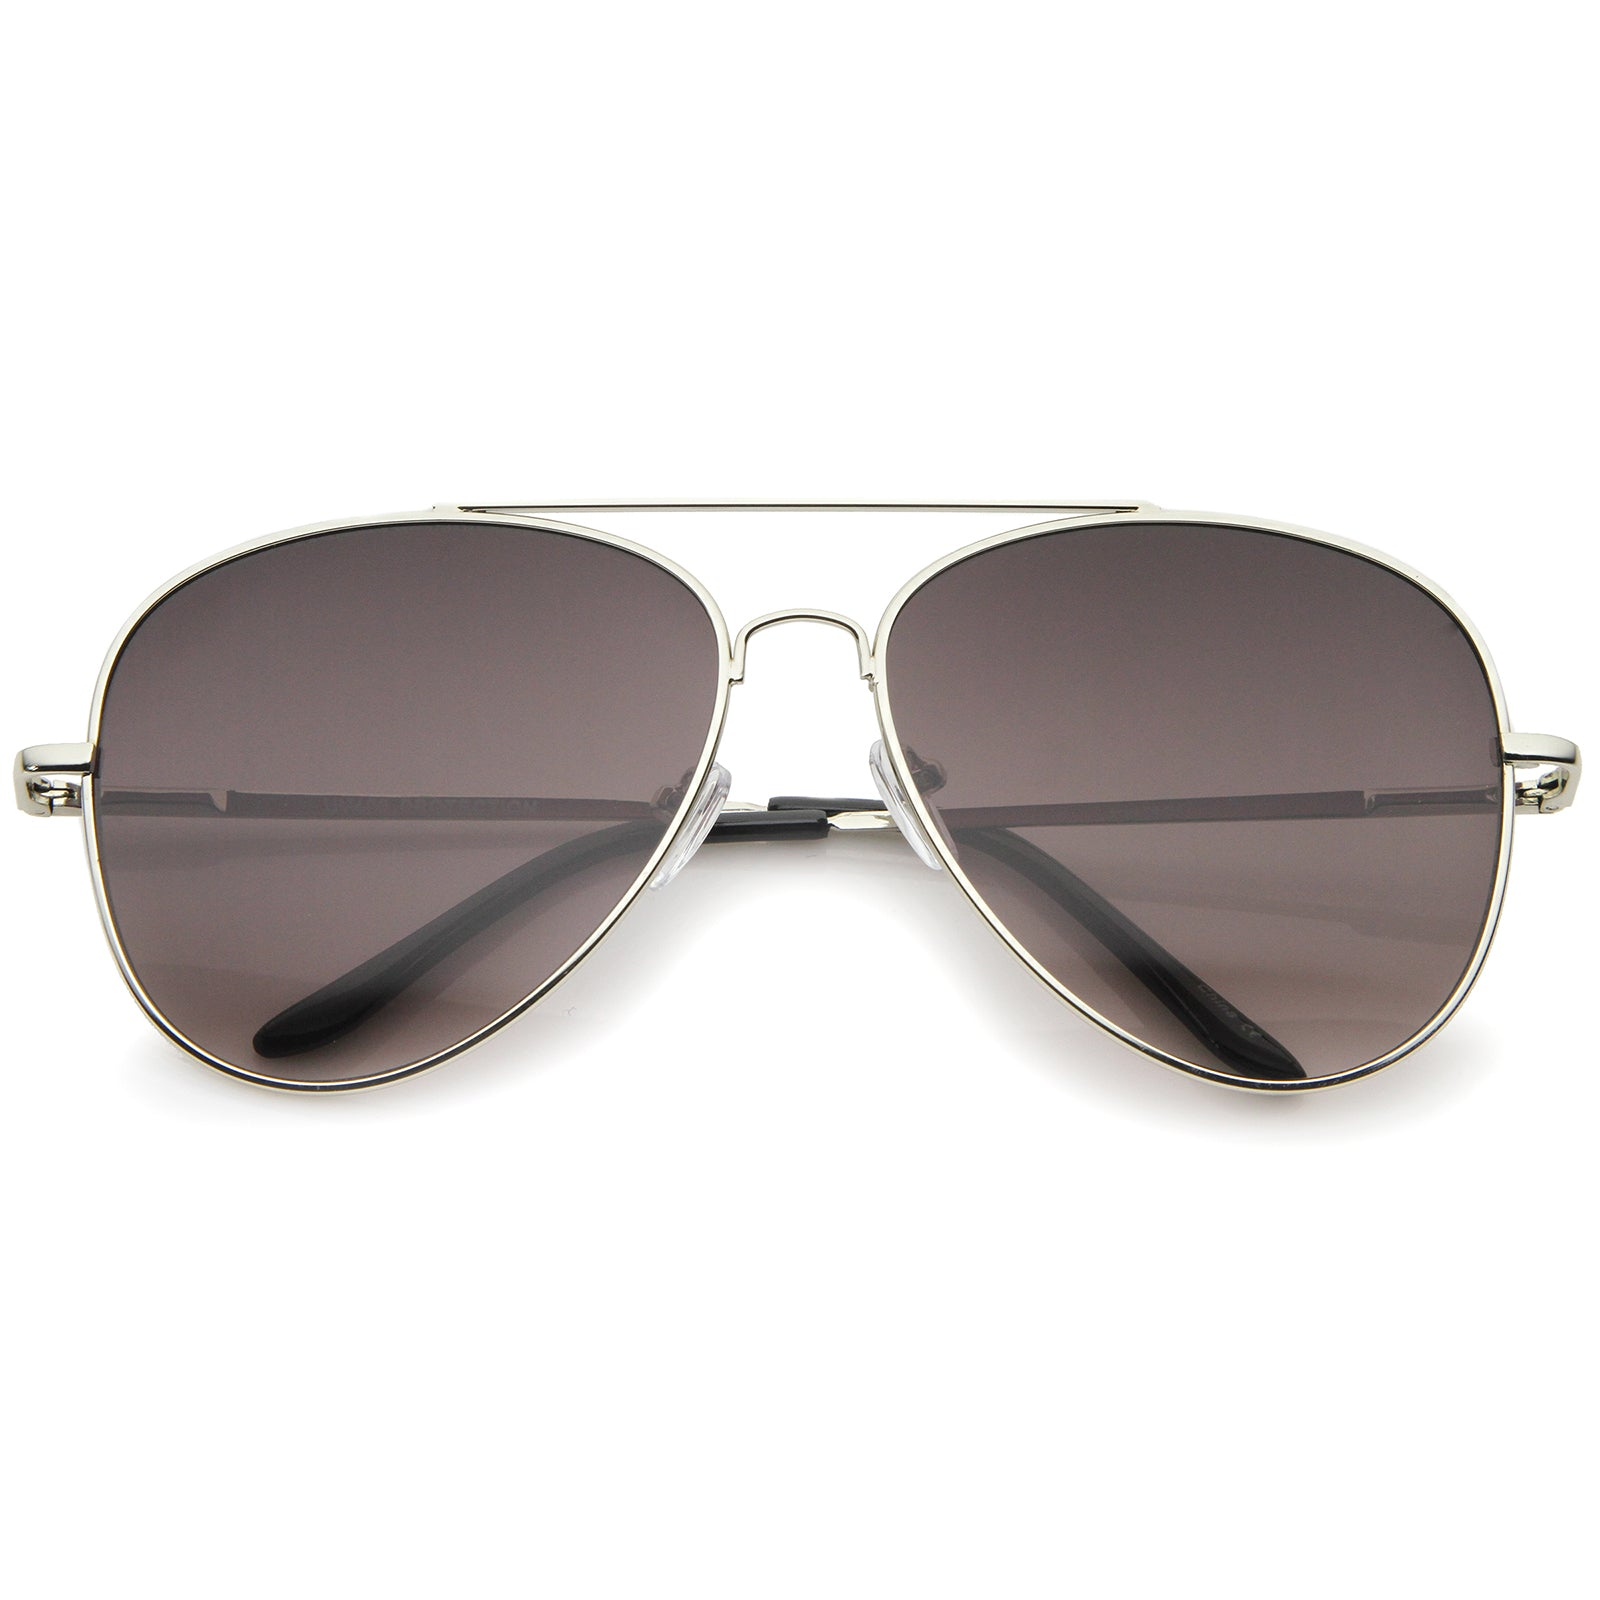 Large Classic Full Metal Teardrop Flat Lens Aviator Sunglasses 60mm - sunglass.la - 5